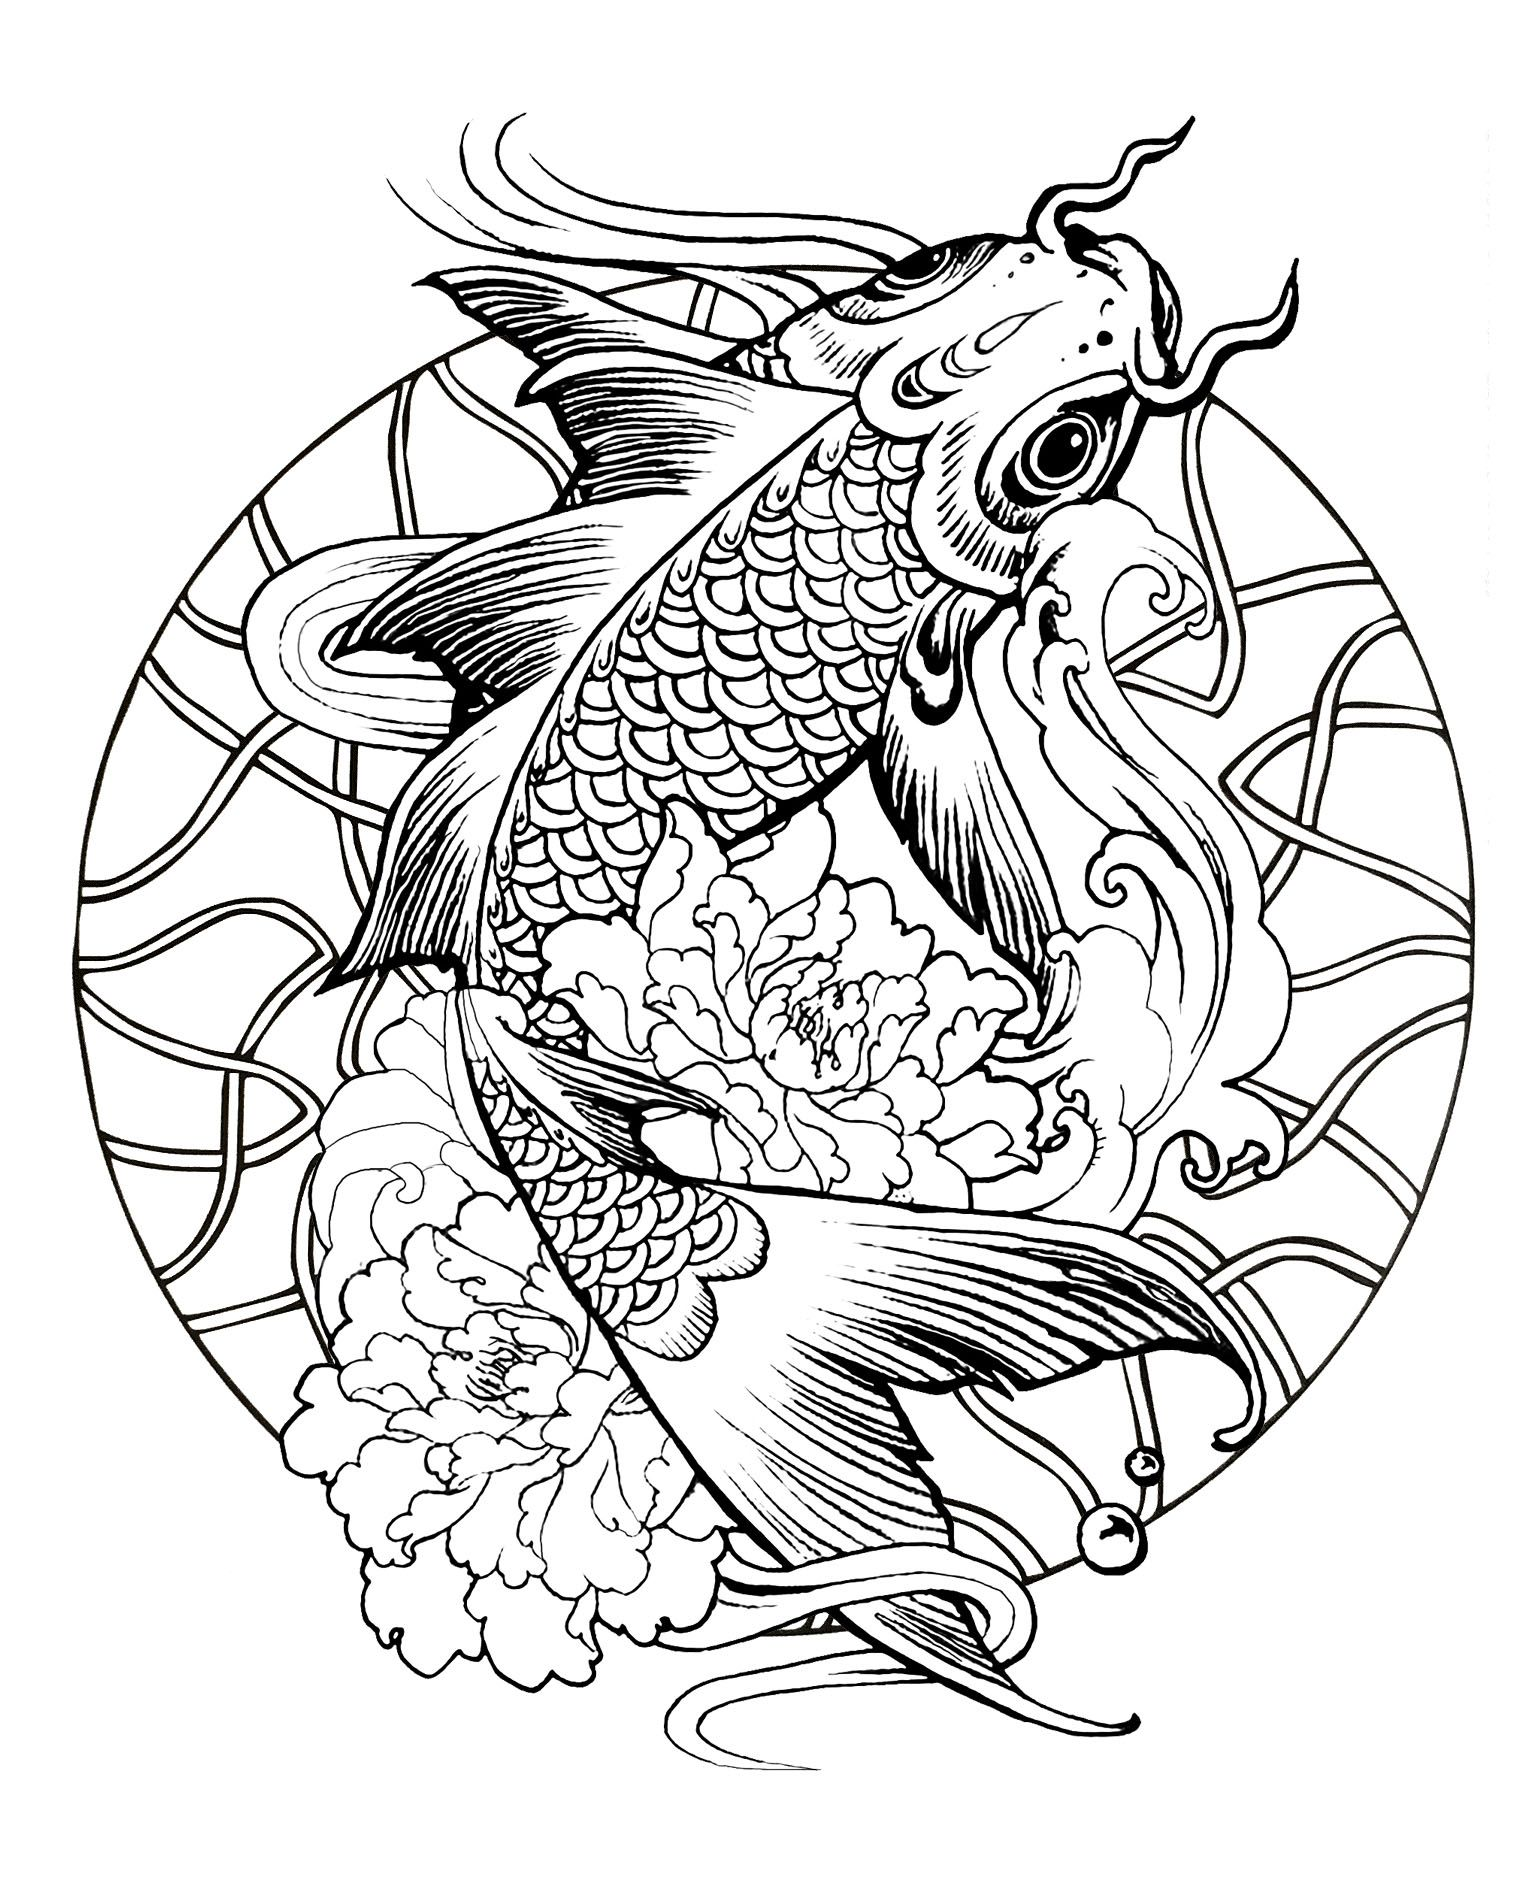 Here are Difficult Mandalas Coloring pages for adults to ...